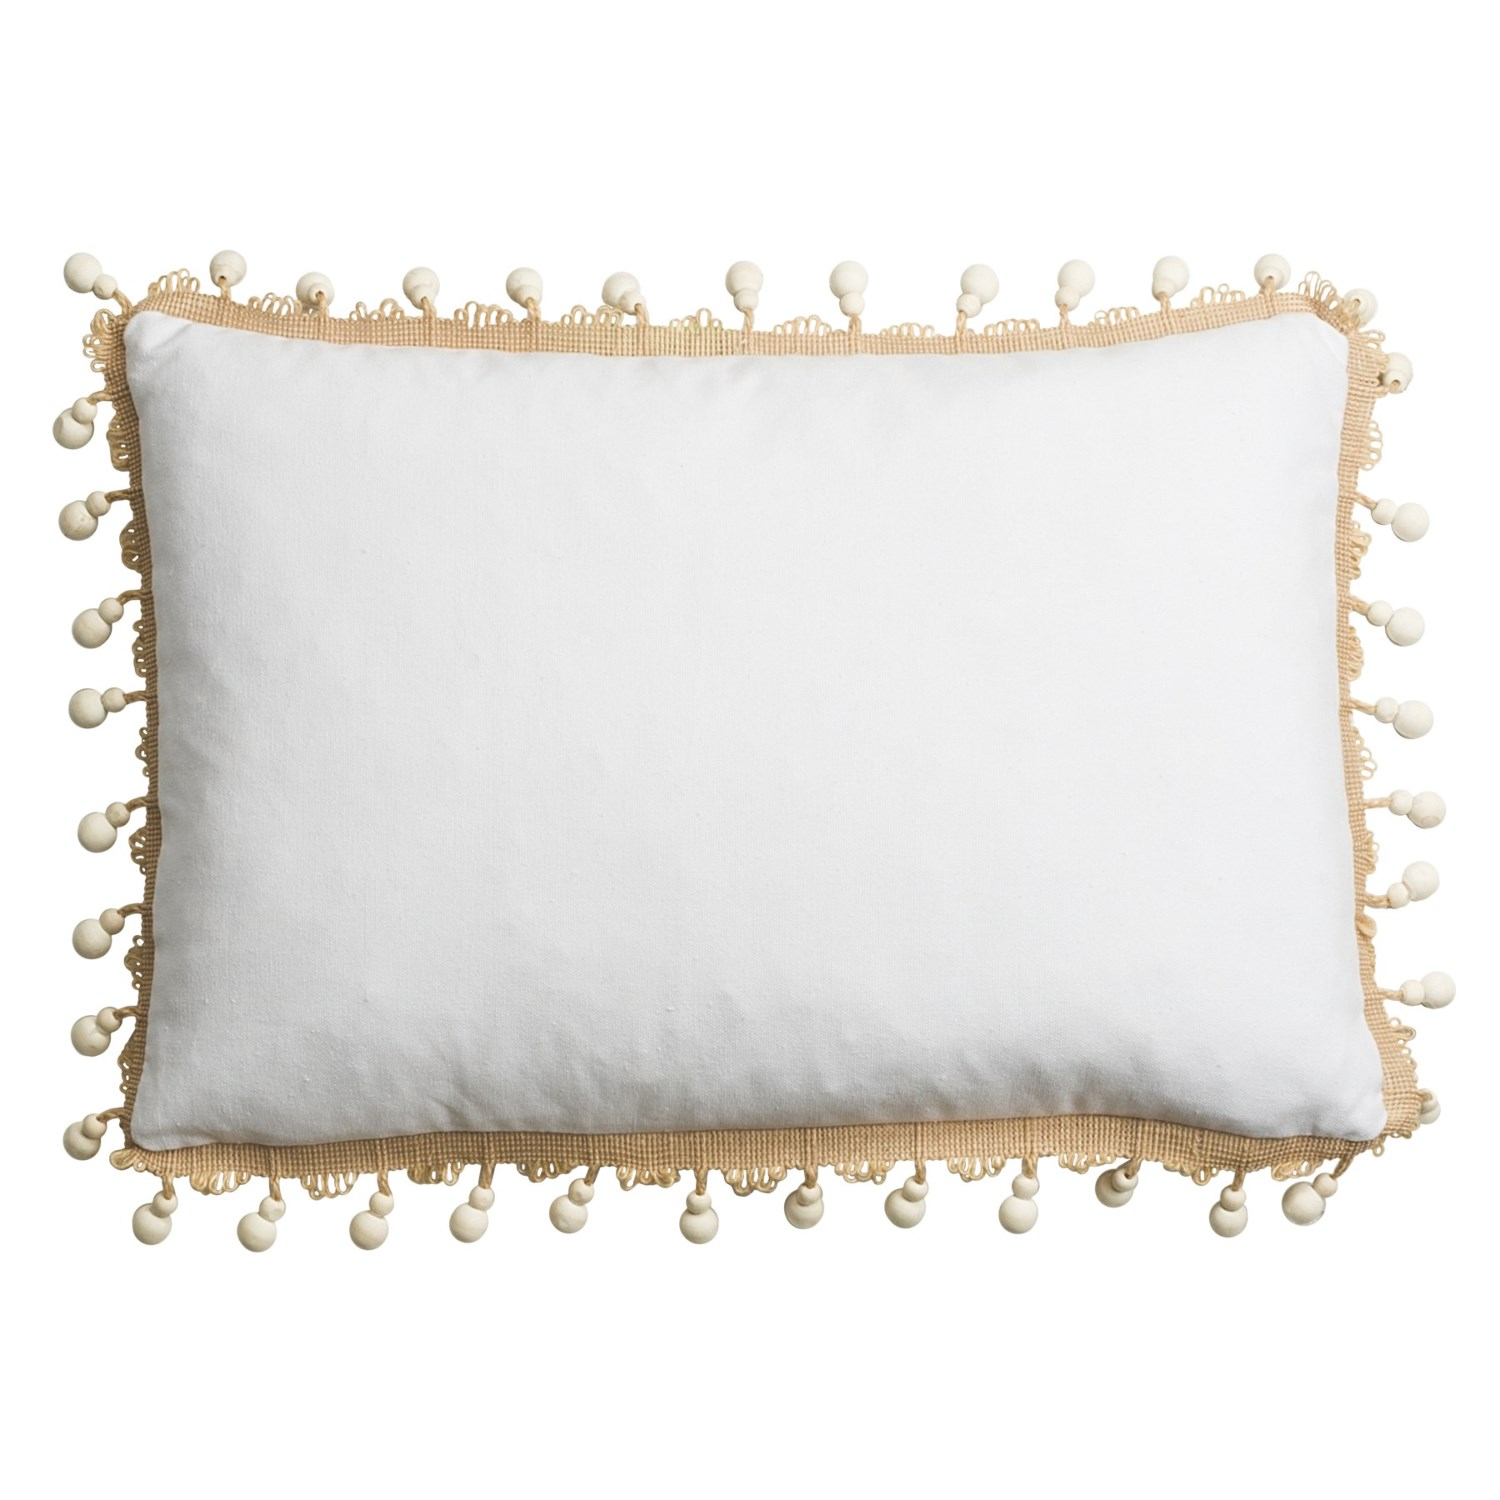 Ivy Hill Home Amara Decor Pillow - 14x20? 129XP - Save 44%